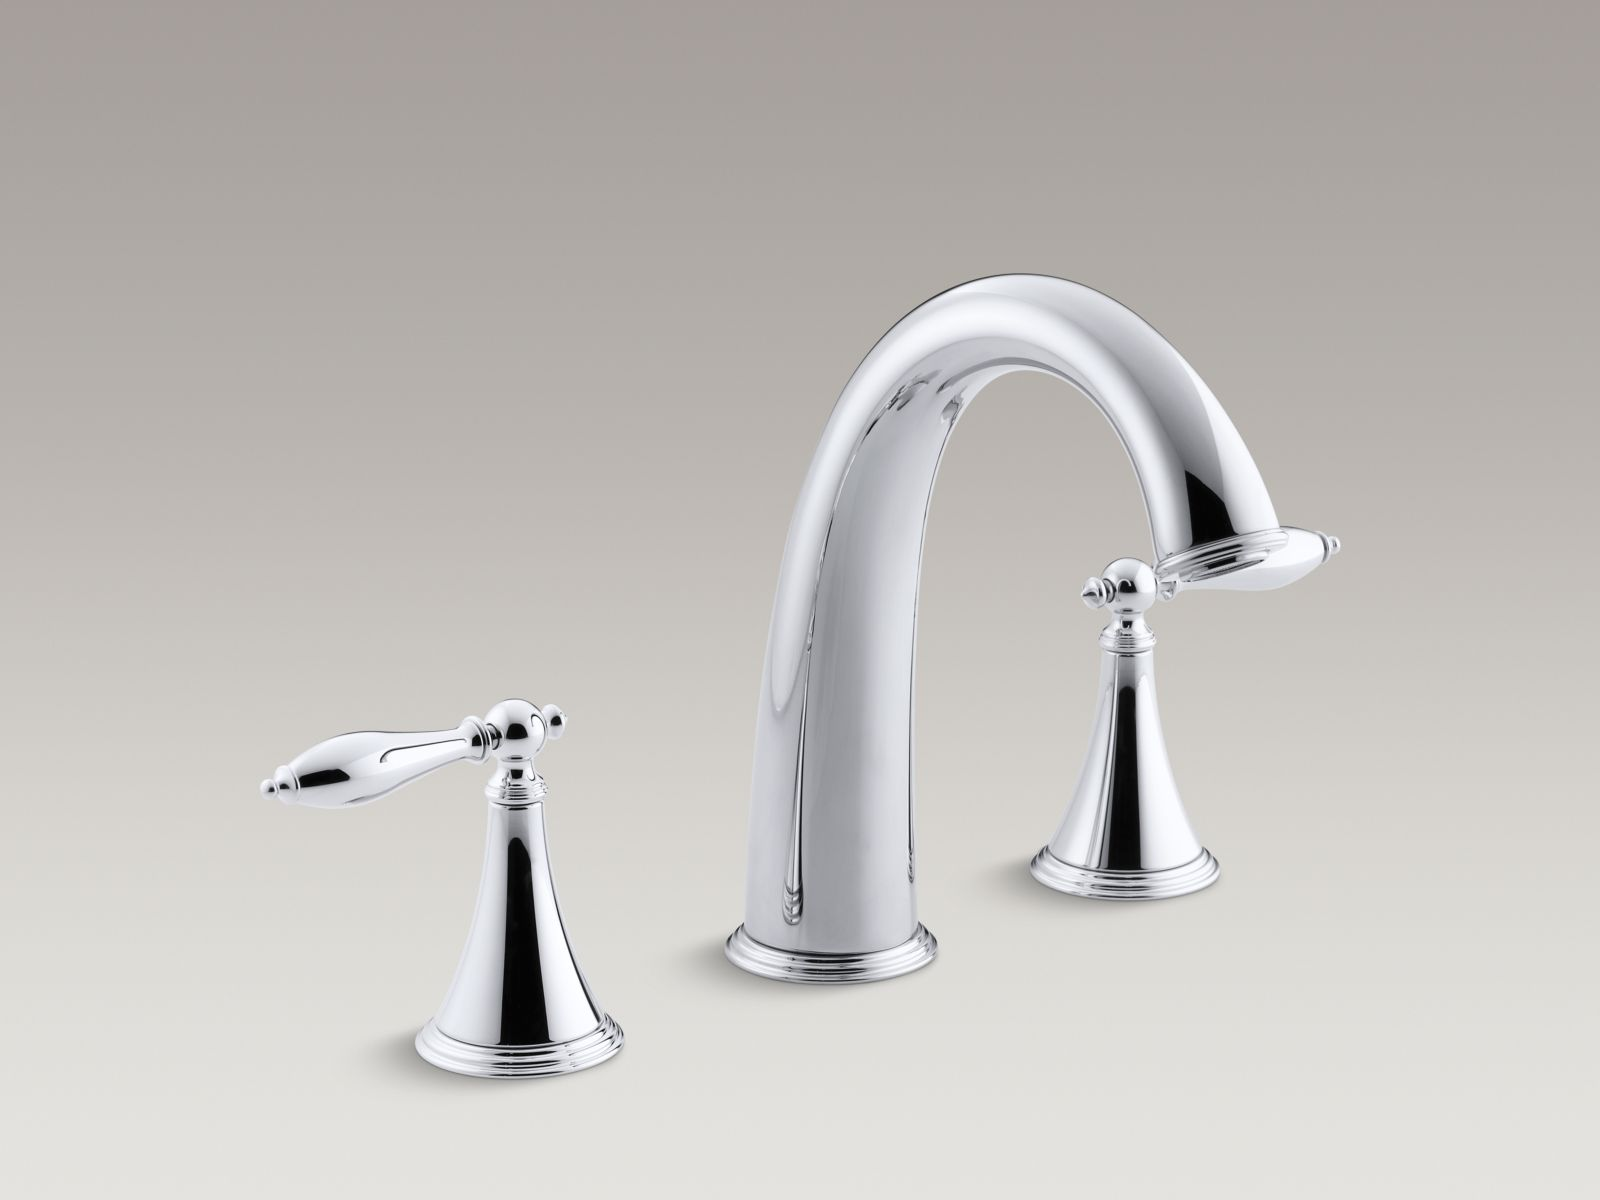 Kohler Finial® Traditional K-T314-4M-CP Deck-mount bath faucet trim for high-flow valve with lever handles, valve not included Polished Chrome